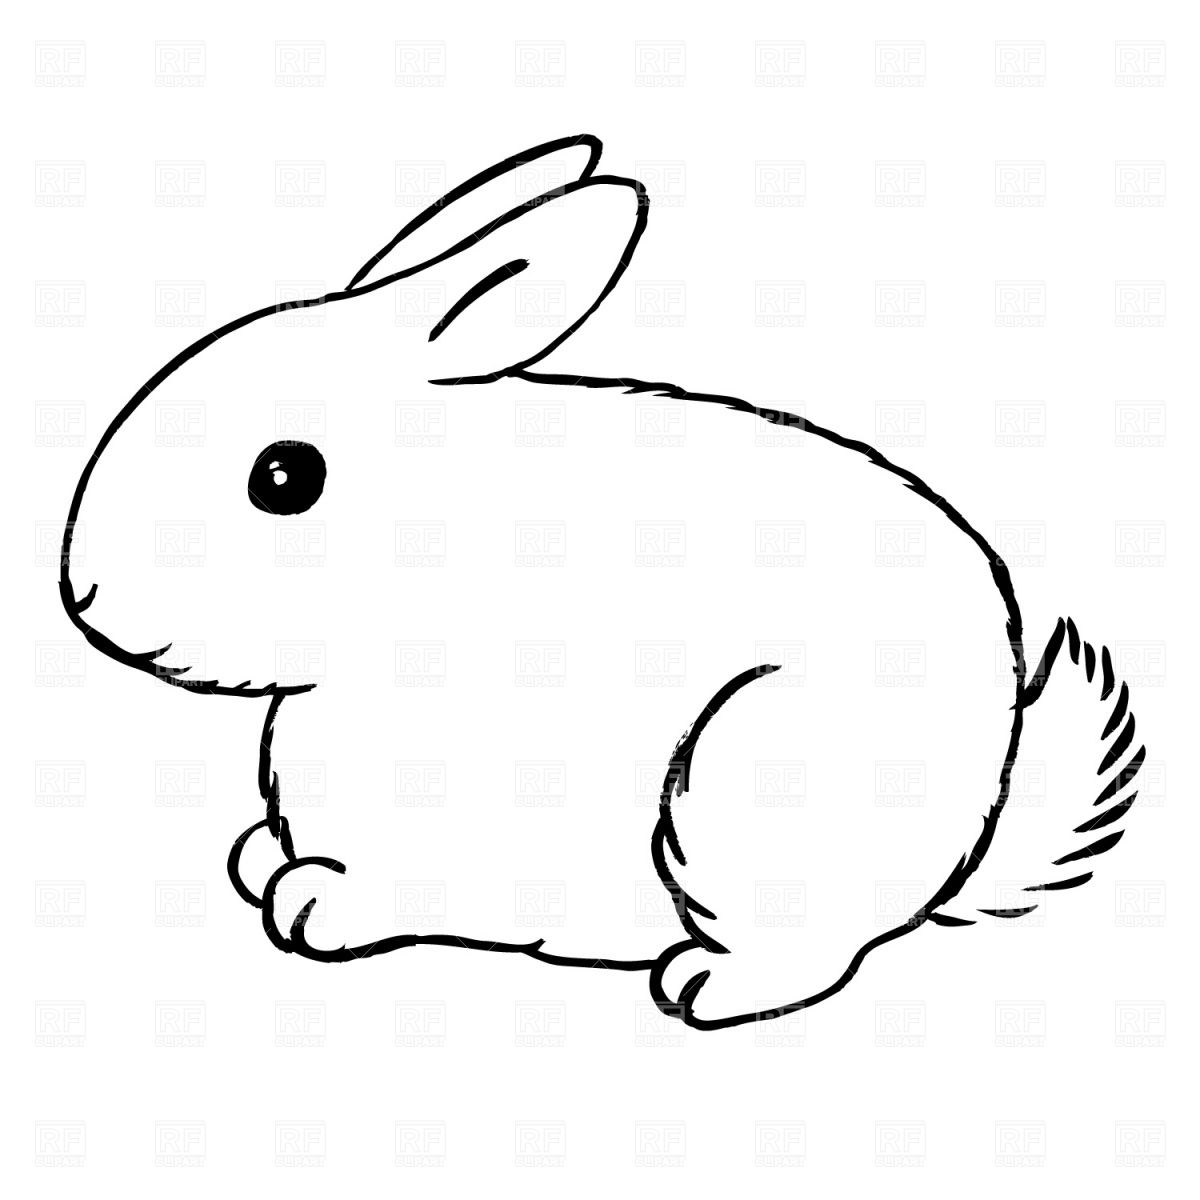 1200x1200 Drawings Of Rabbits And Bunnies Use These Free Images For Your